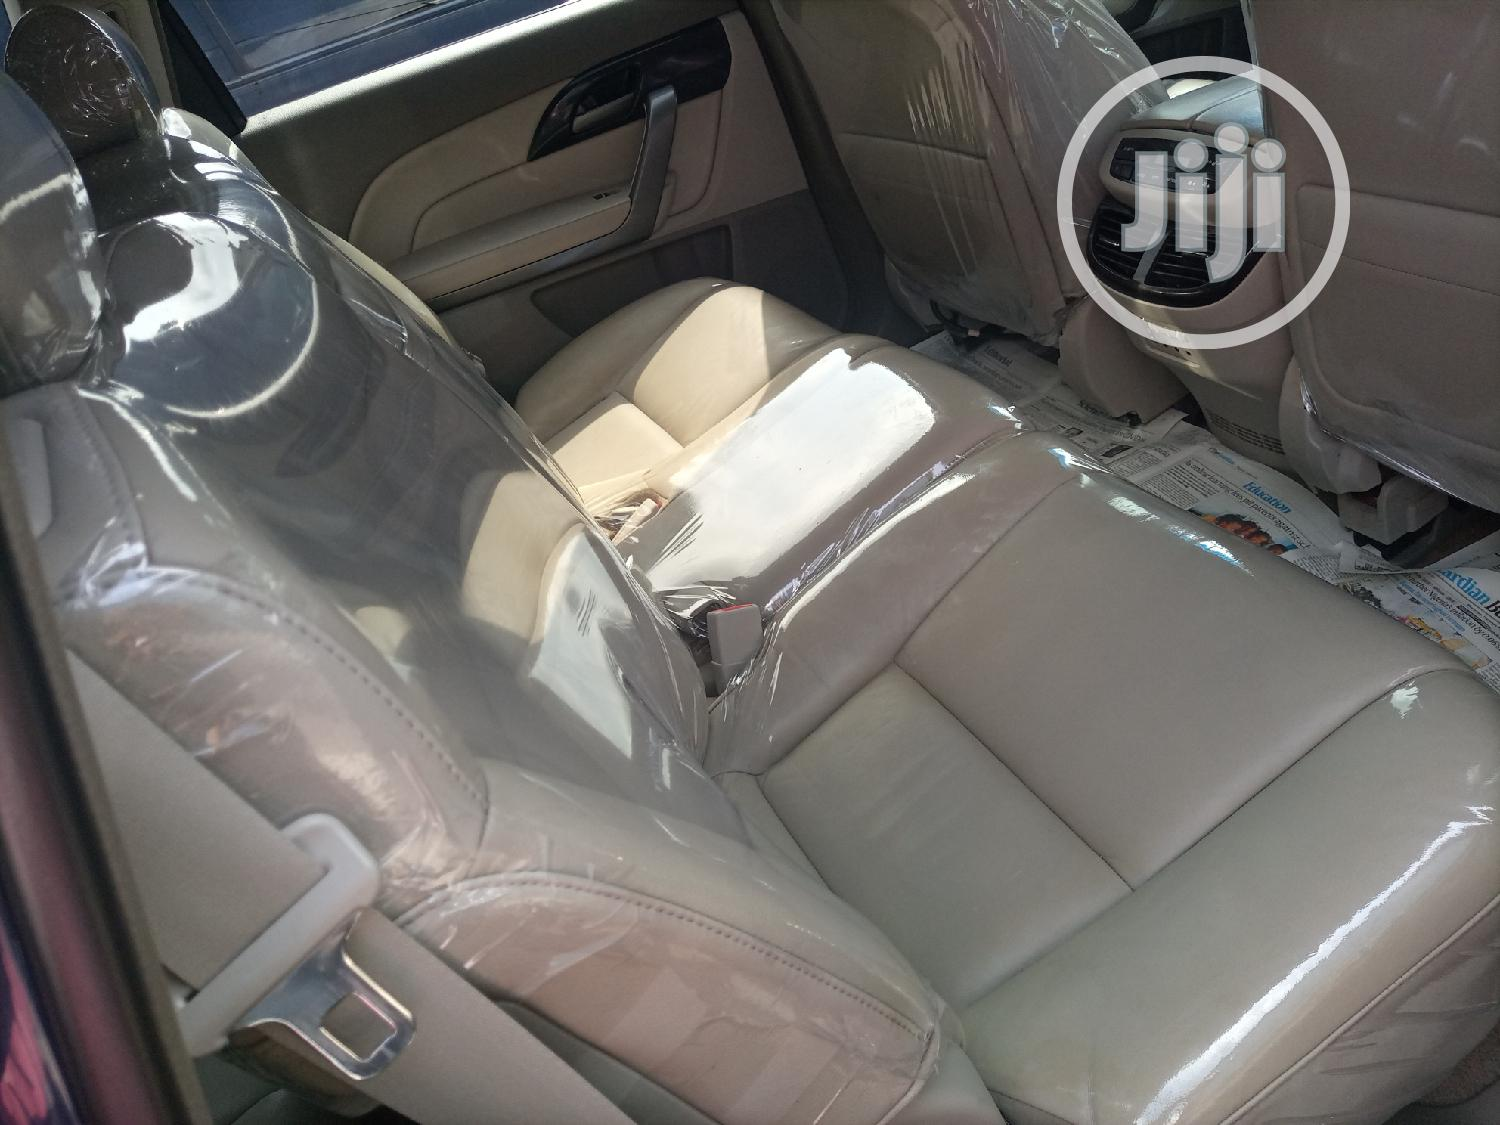 Acura MDX 2009 SUV 4dr AWD (3.7 6cyl 5A) Blue   Cars for sale in Apapa, Lagos State, Nigeria